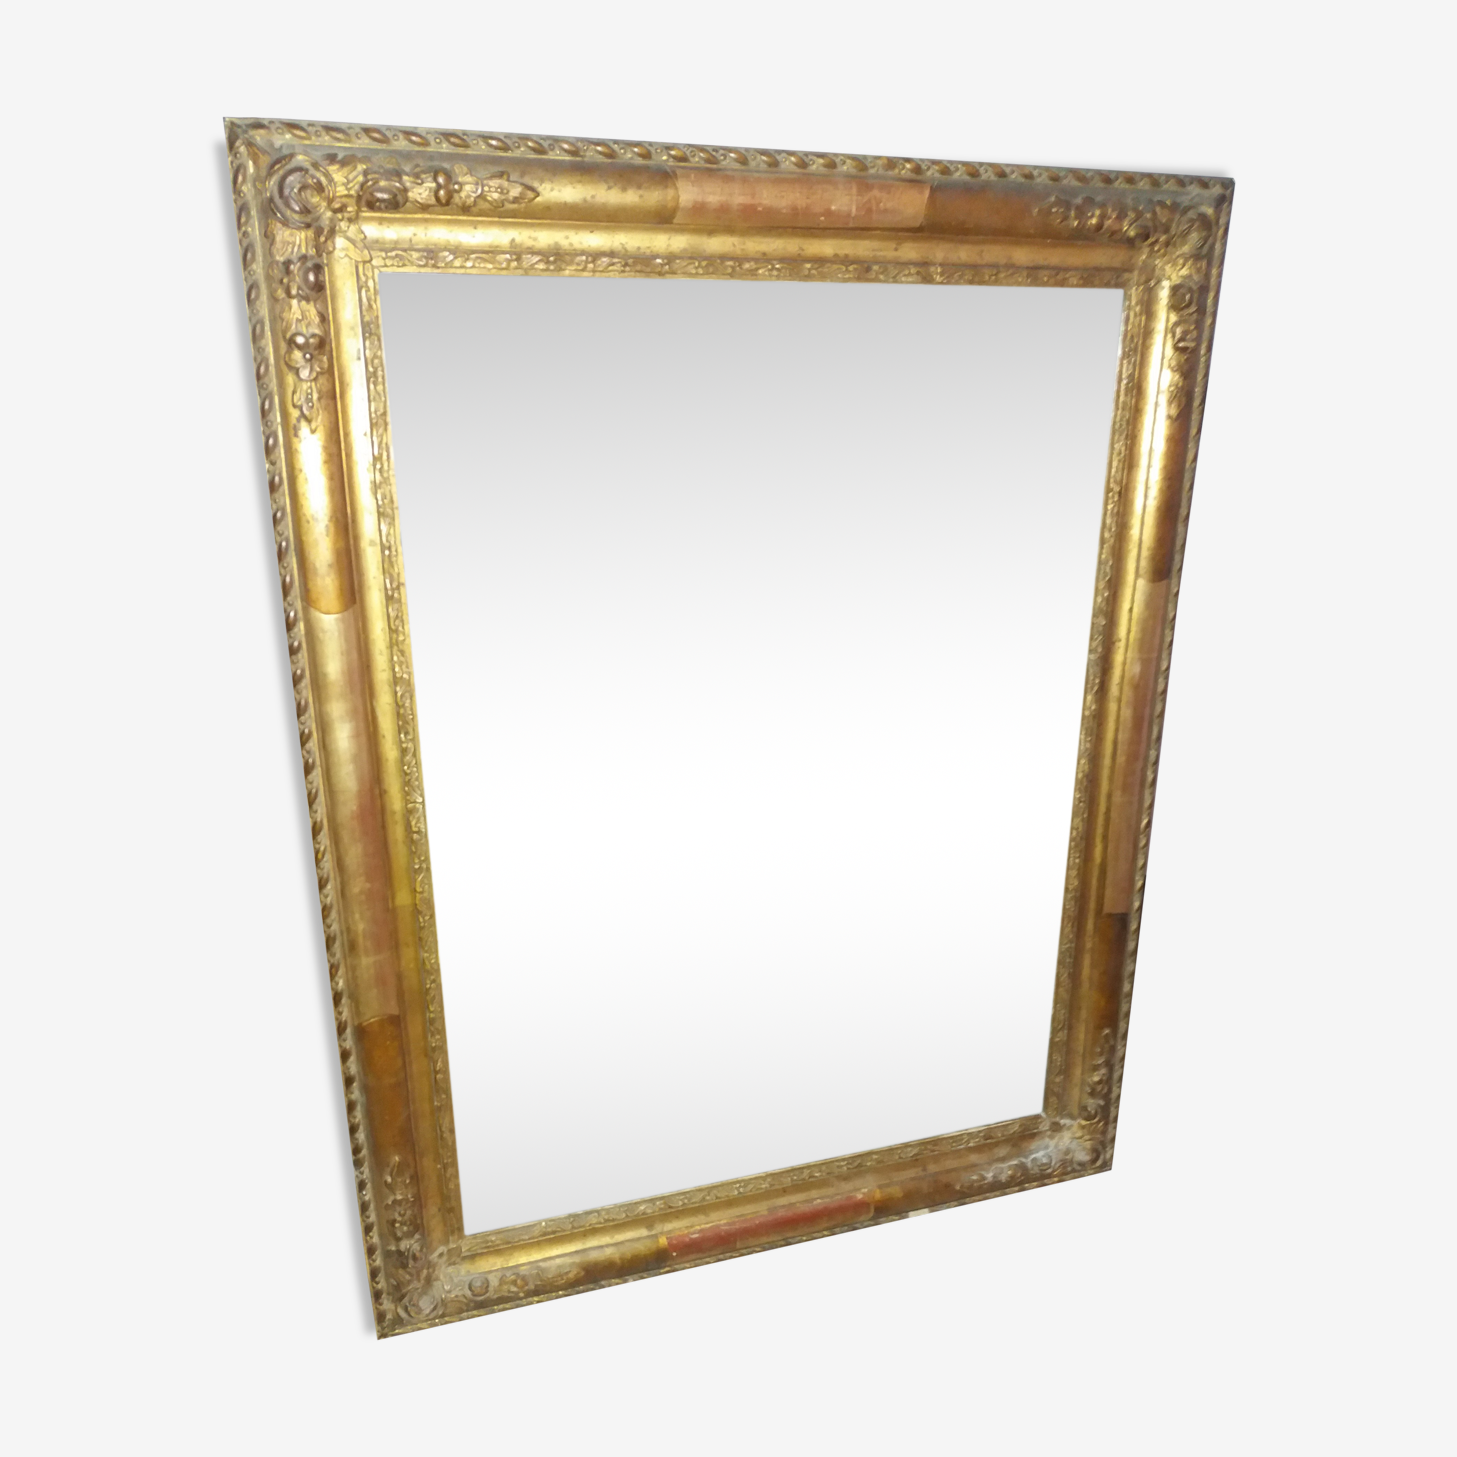 Wooden and stucco mirror 1850 - 45,5x58cm